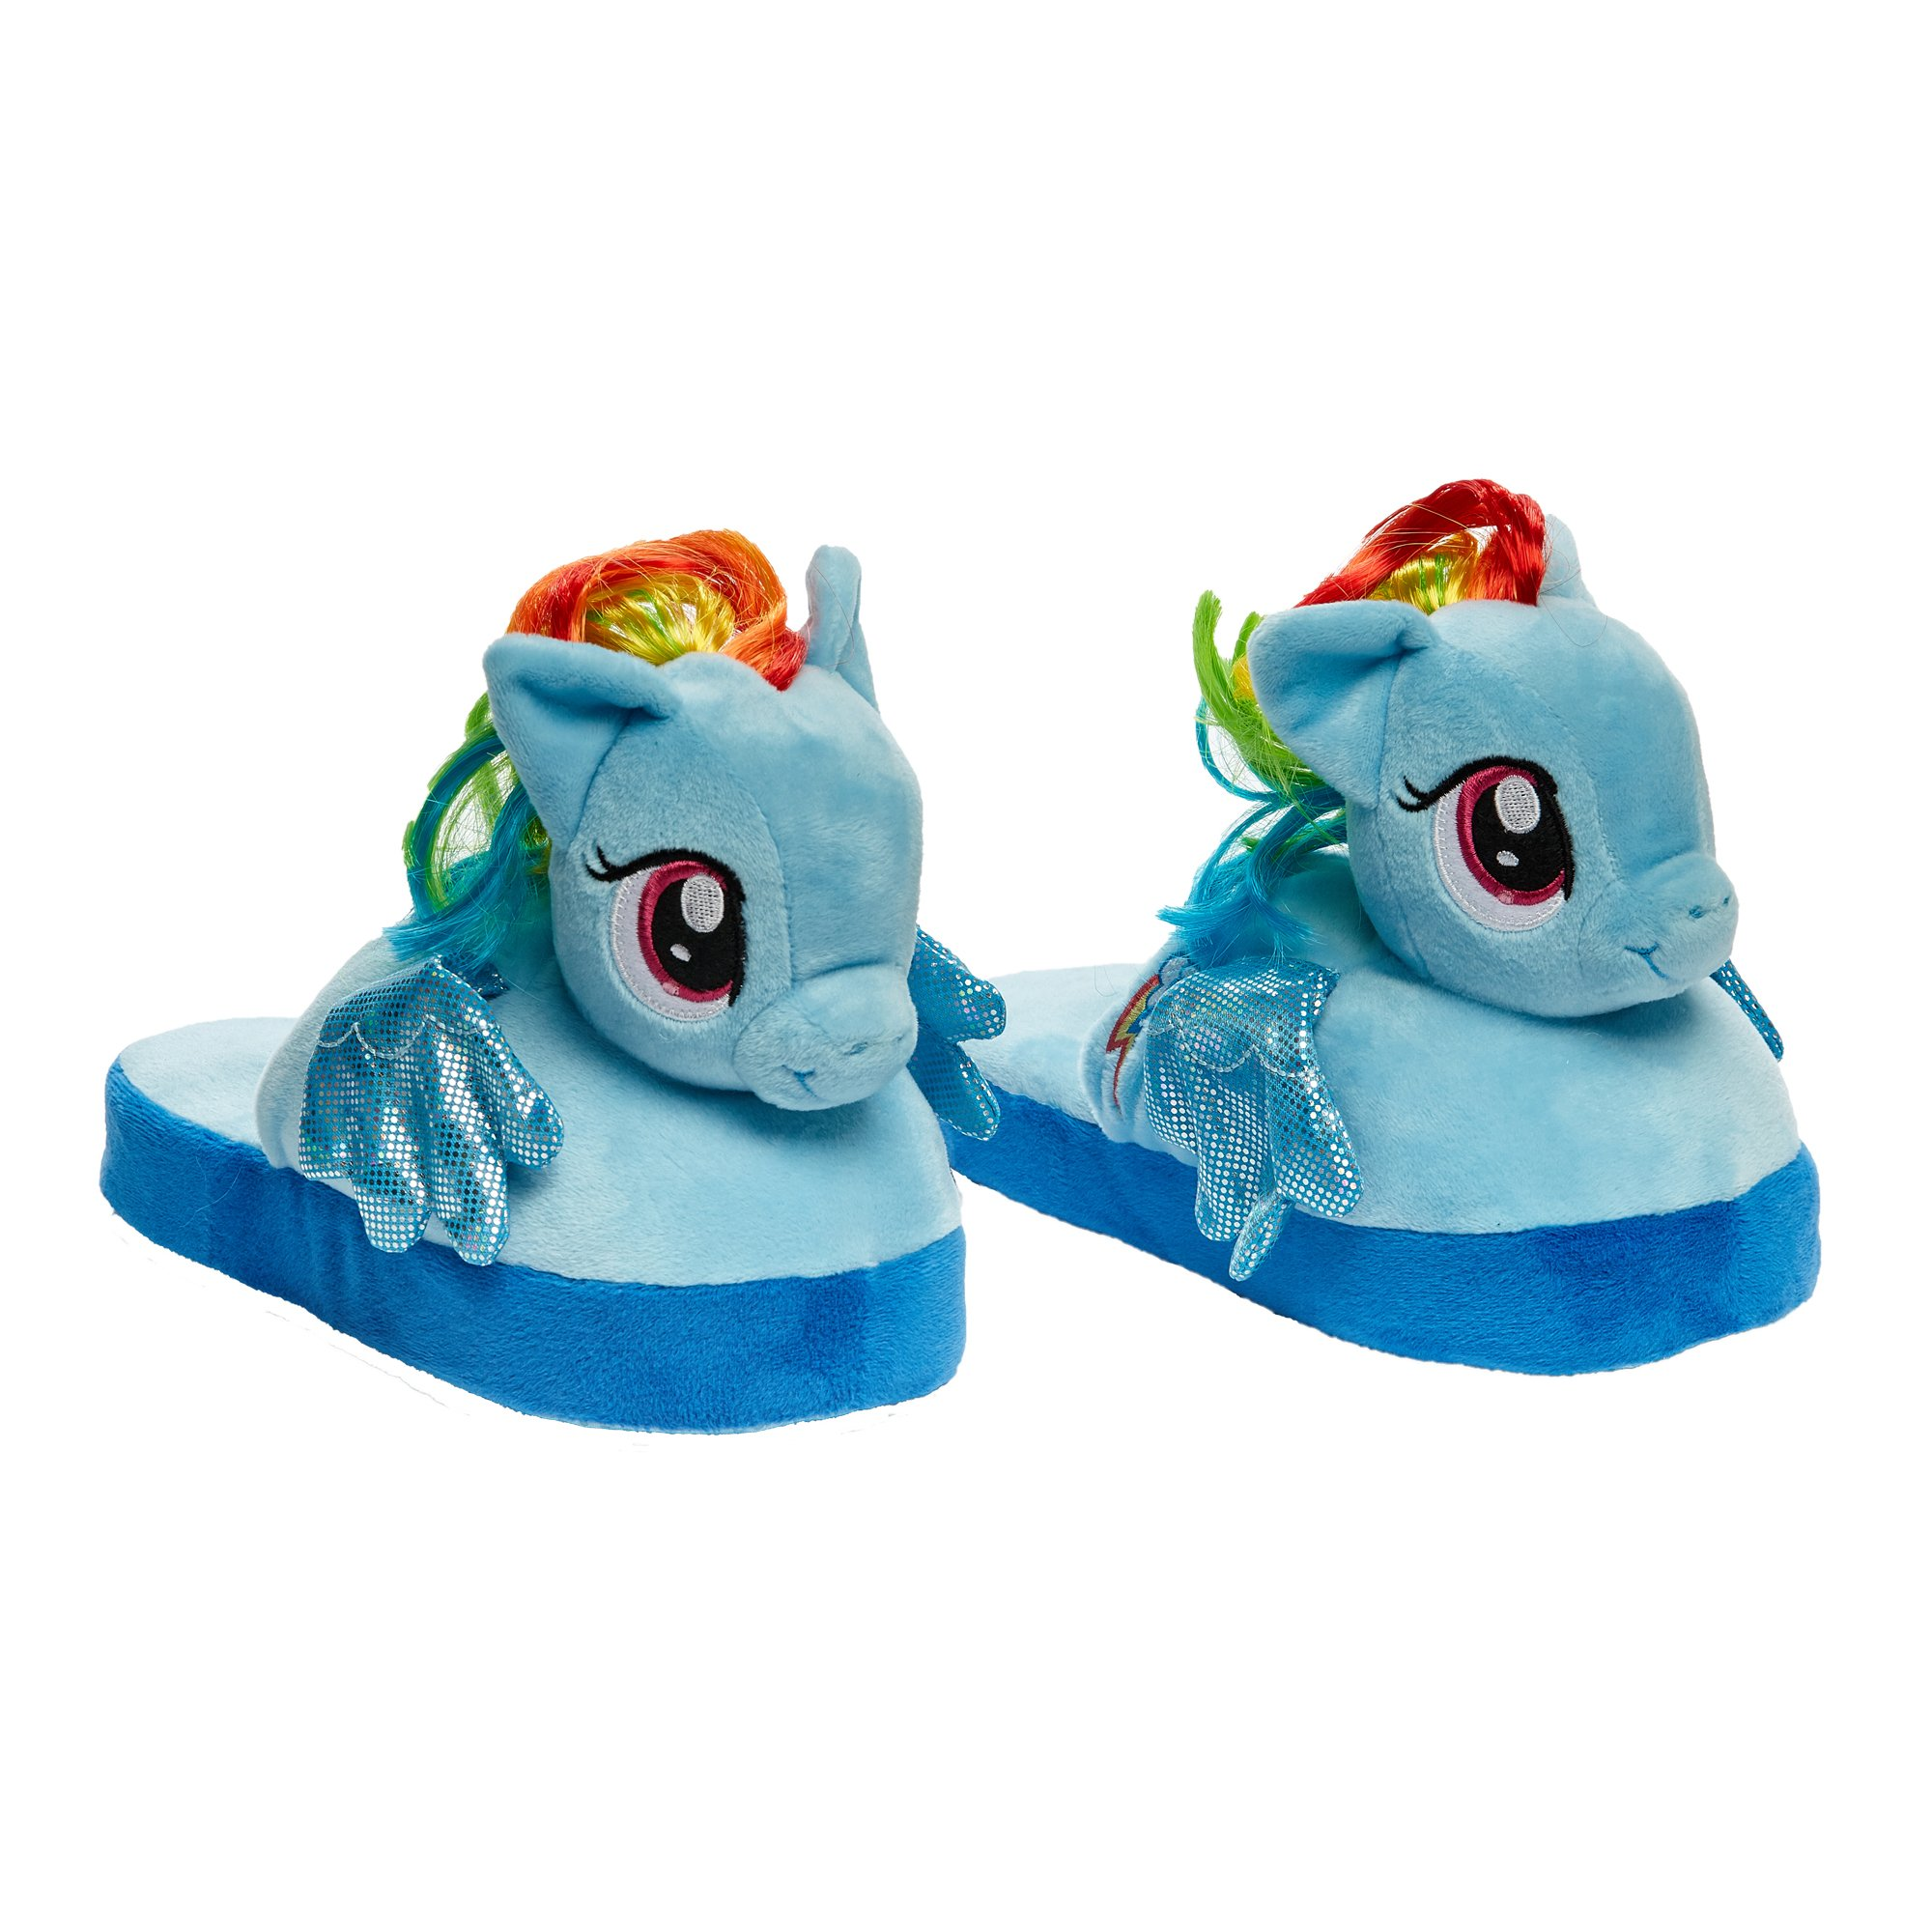 Stompeez Animated My Little Pony Plush Slippers - Ultra Soft and Fuzzy Rainbow Dash Character - Wings Flap as You Walk - Medium